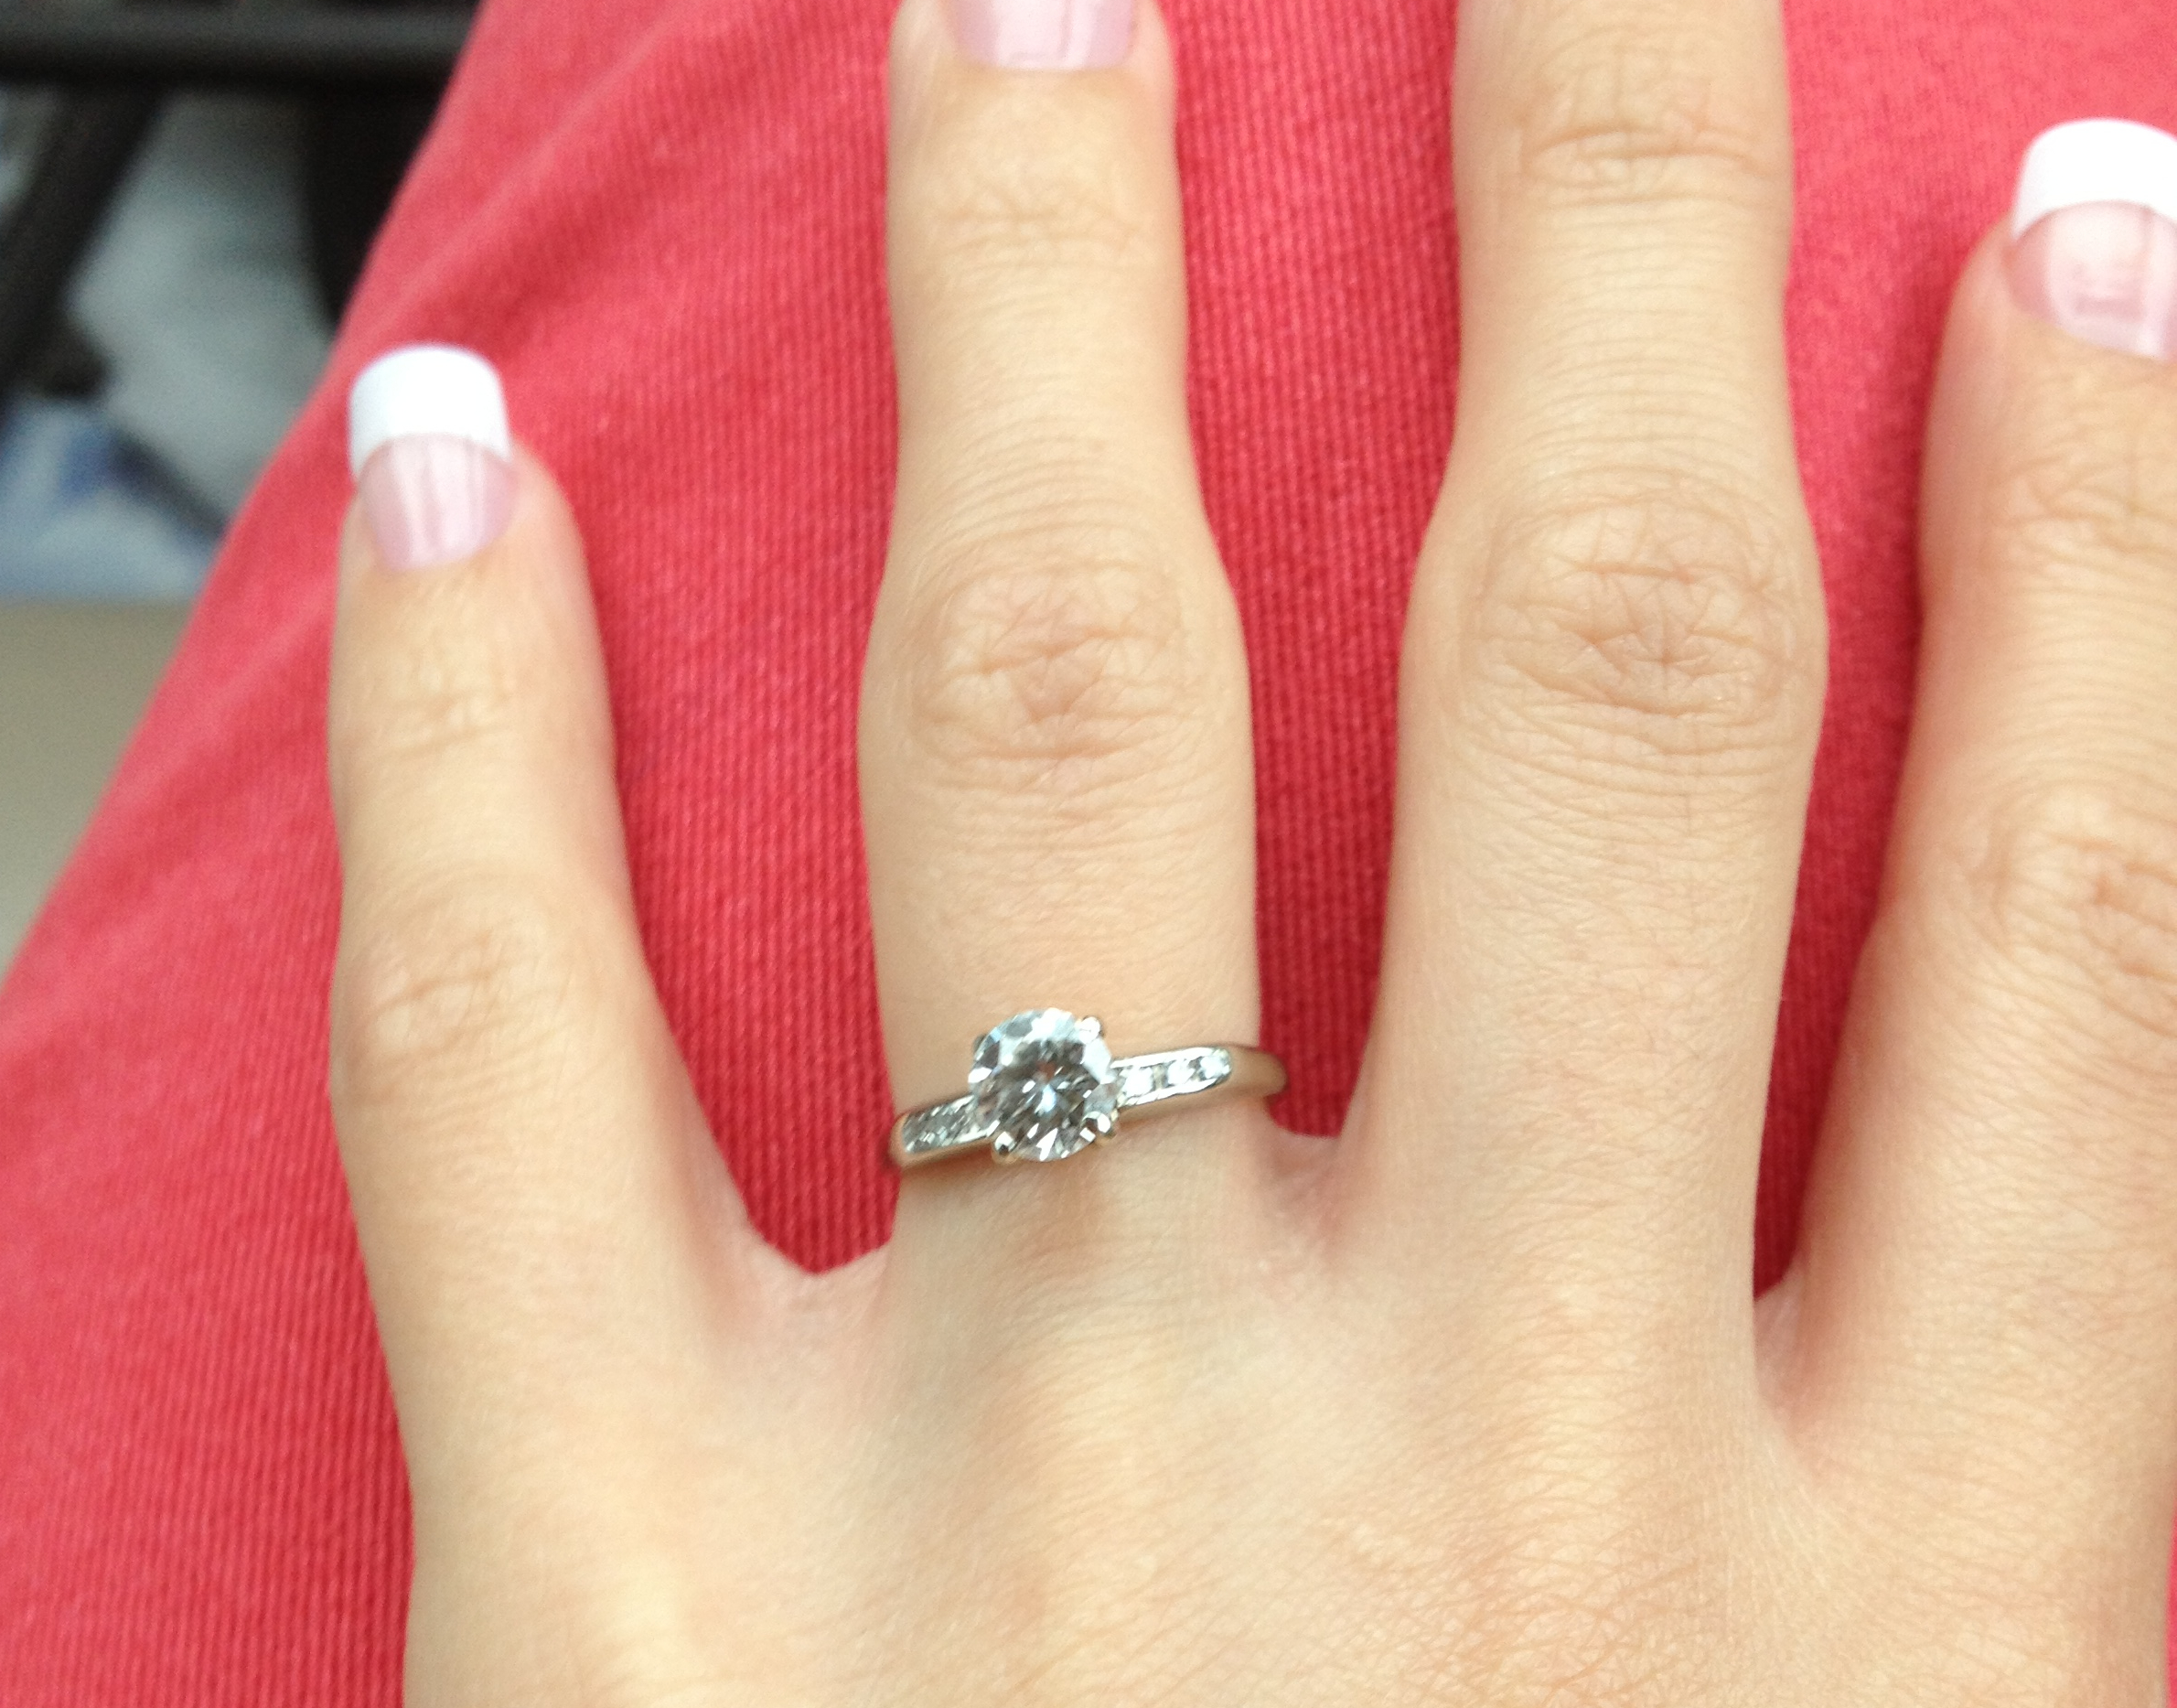 Image 5 of Reader's Rings IV; Engagement Ring Photos Submitted by You!